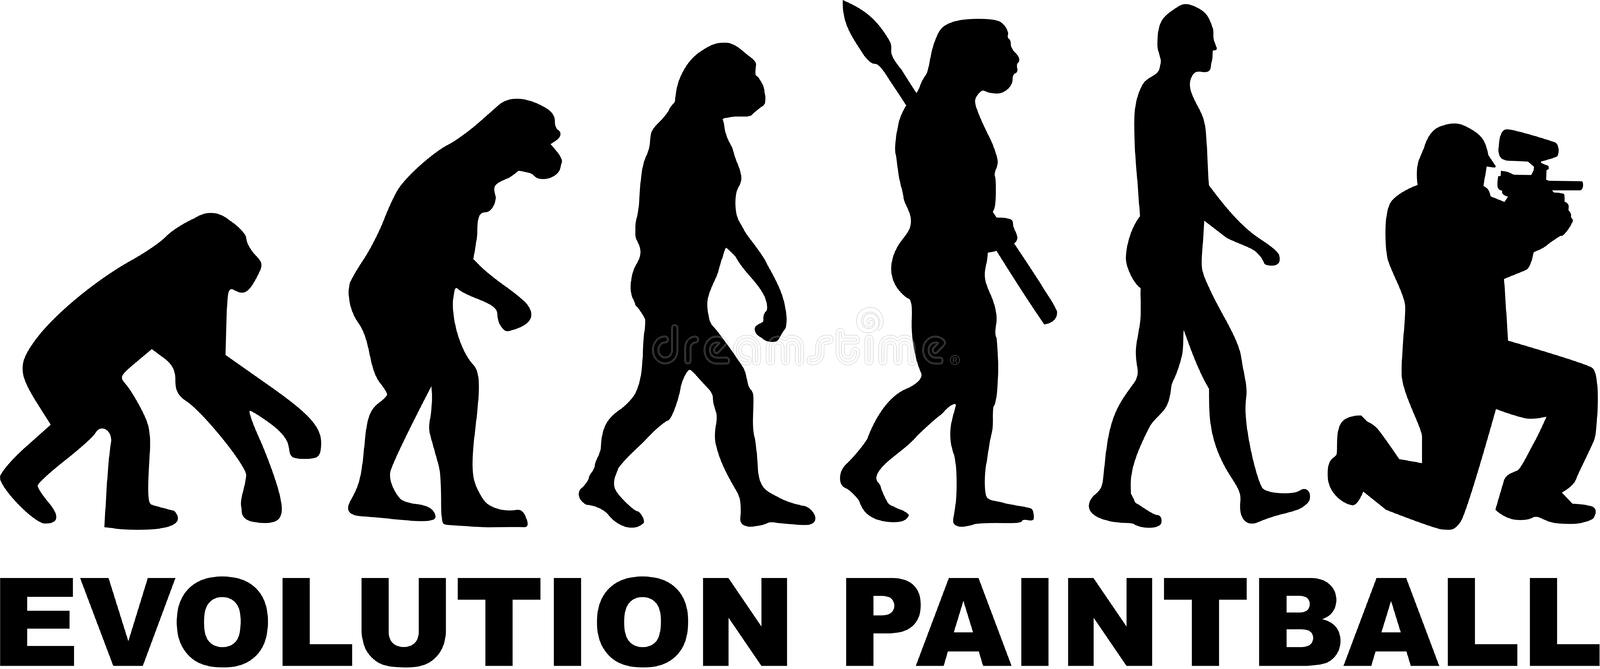 Evolución Paintball libre illustration